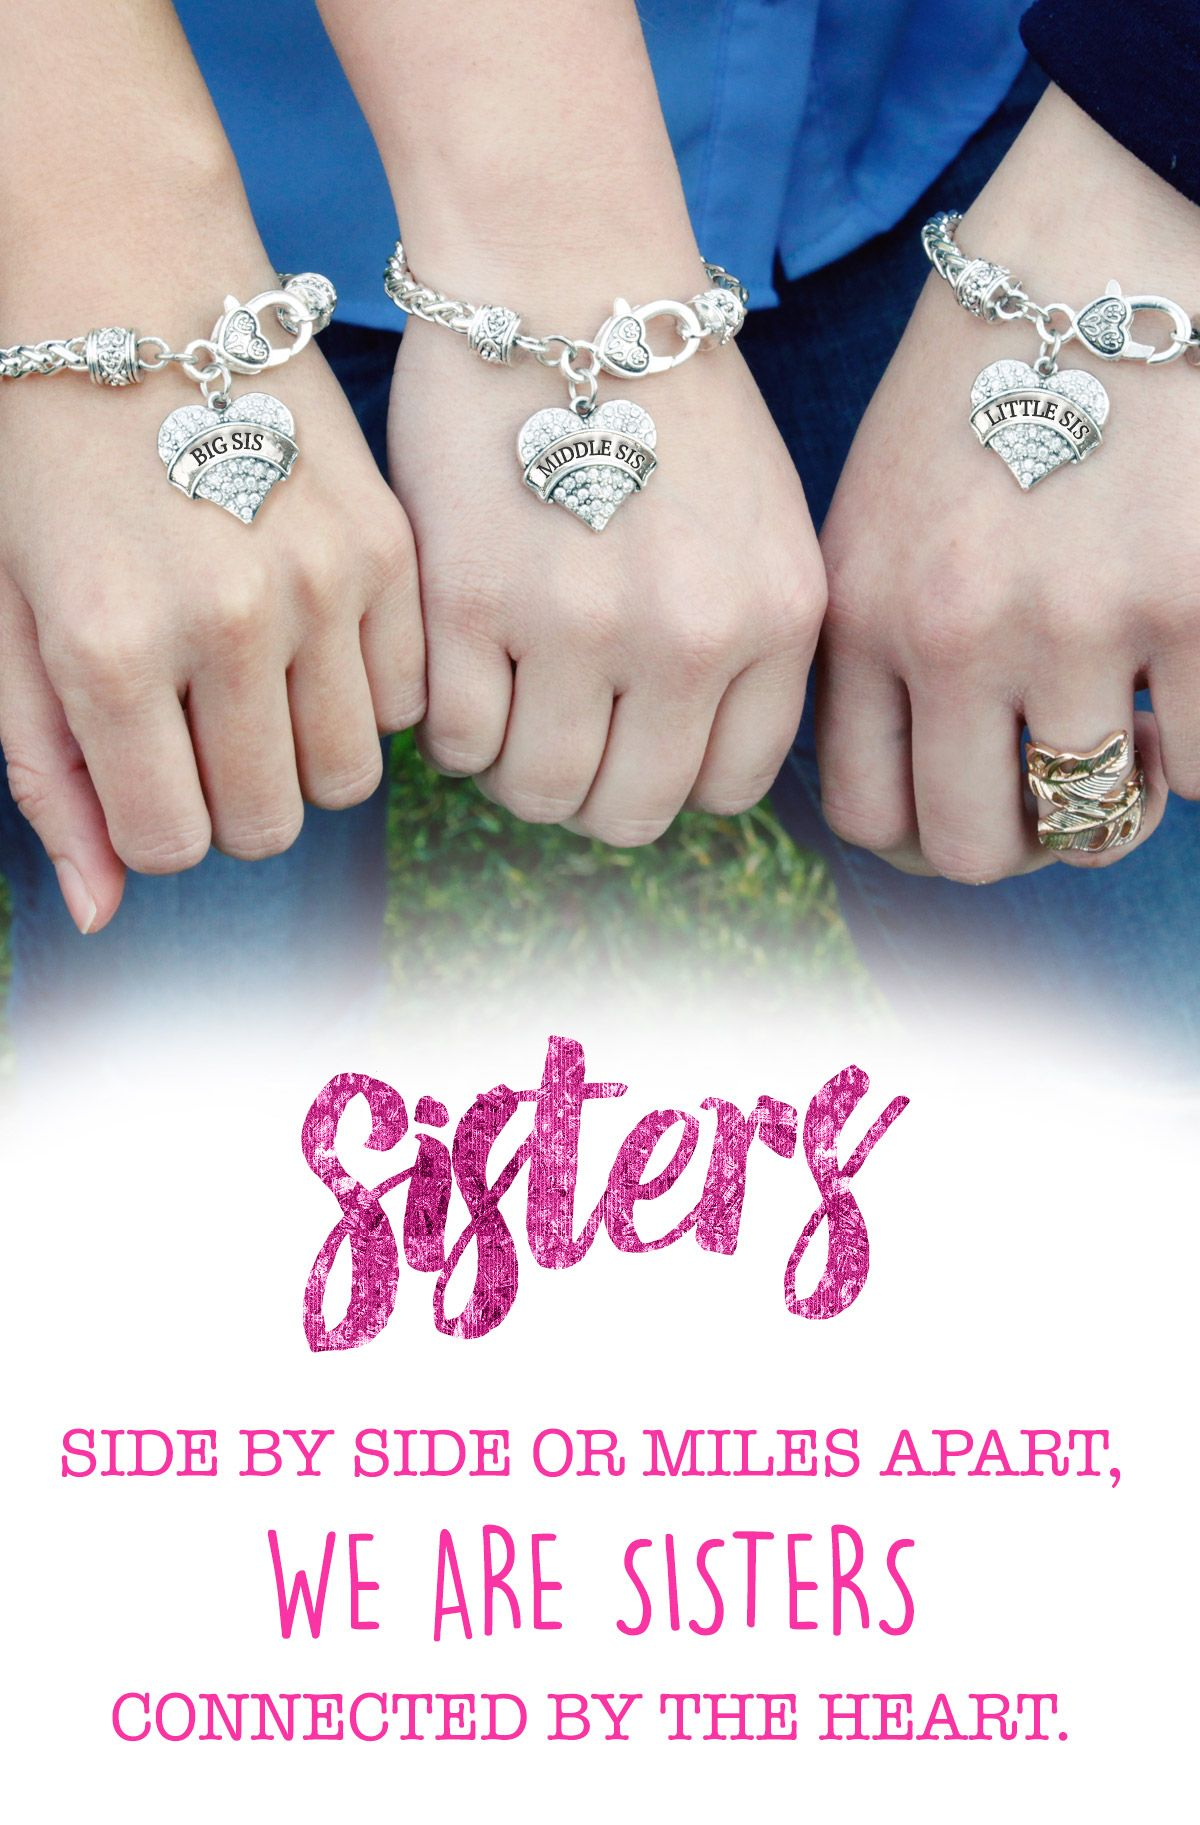 Do you love you sisters Sisters share an unspoken bond throughout